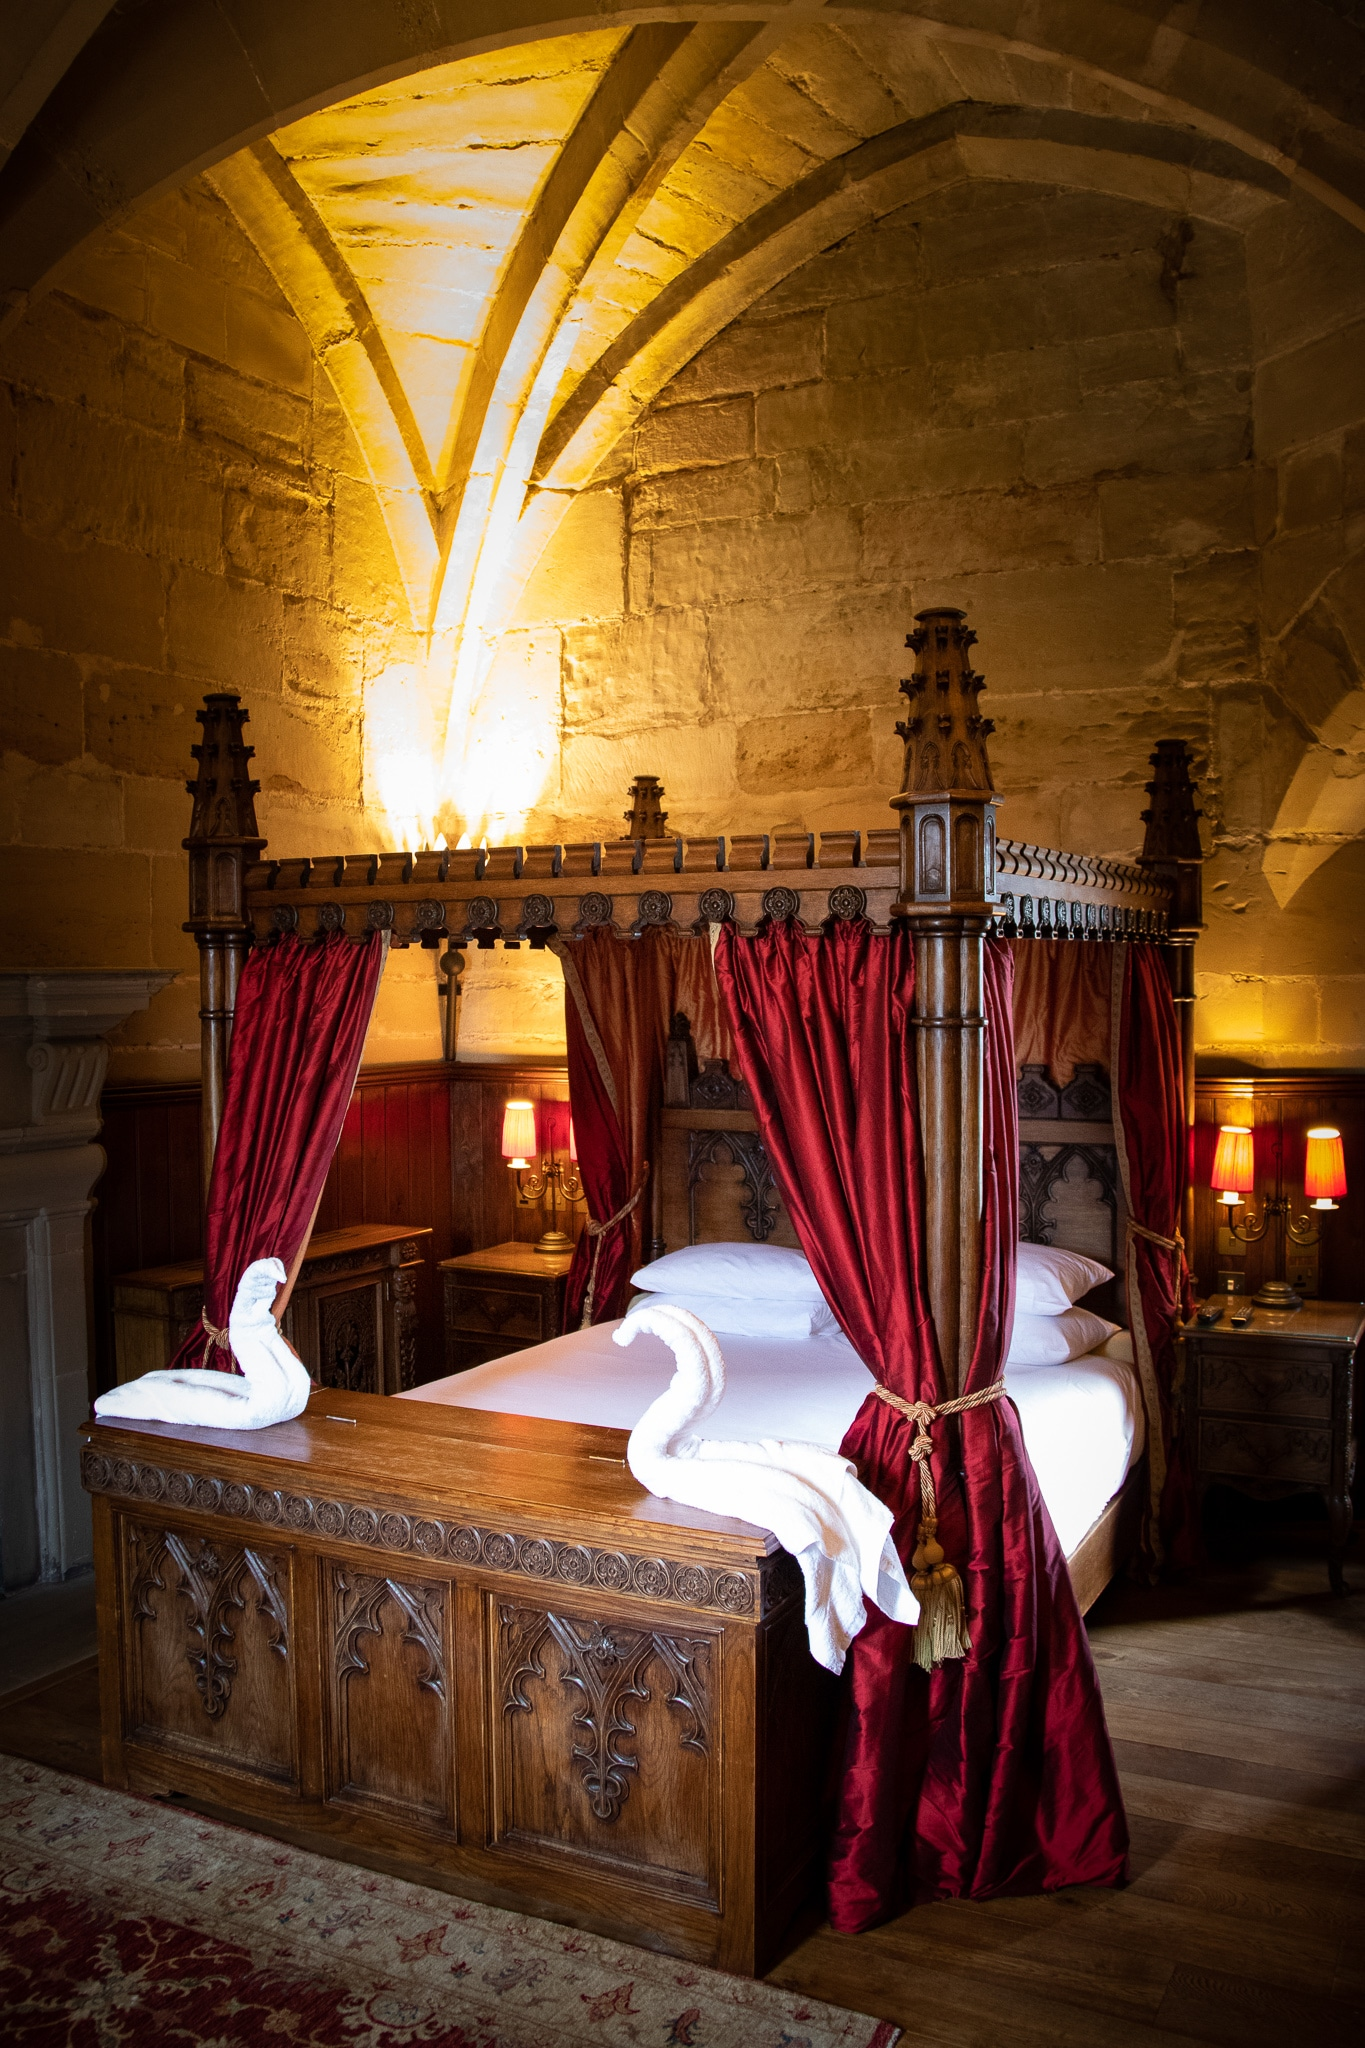 A wooden 4 poster bed with red drapes inside the Tower Suites at Warwick Castle